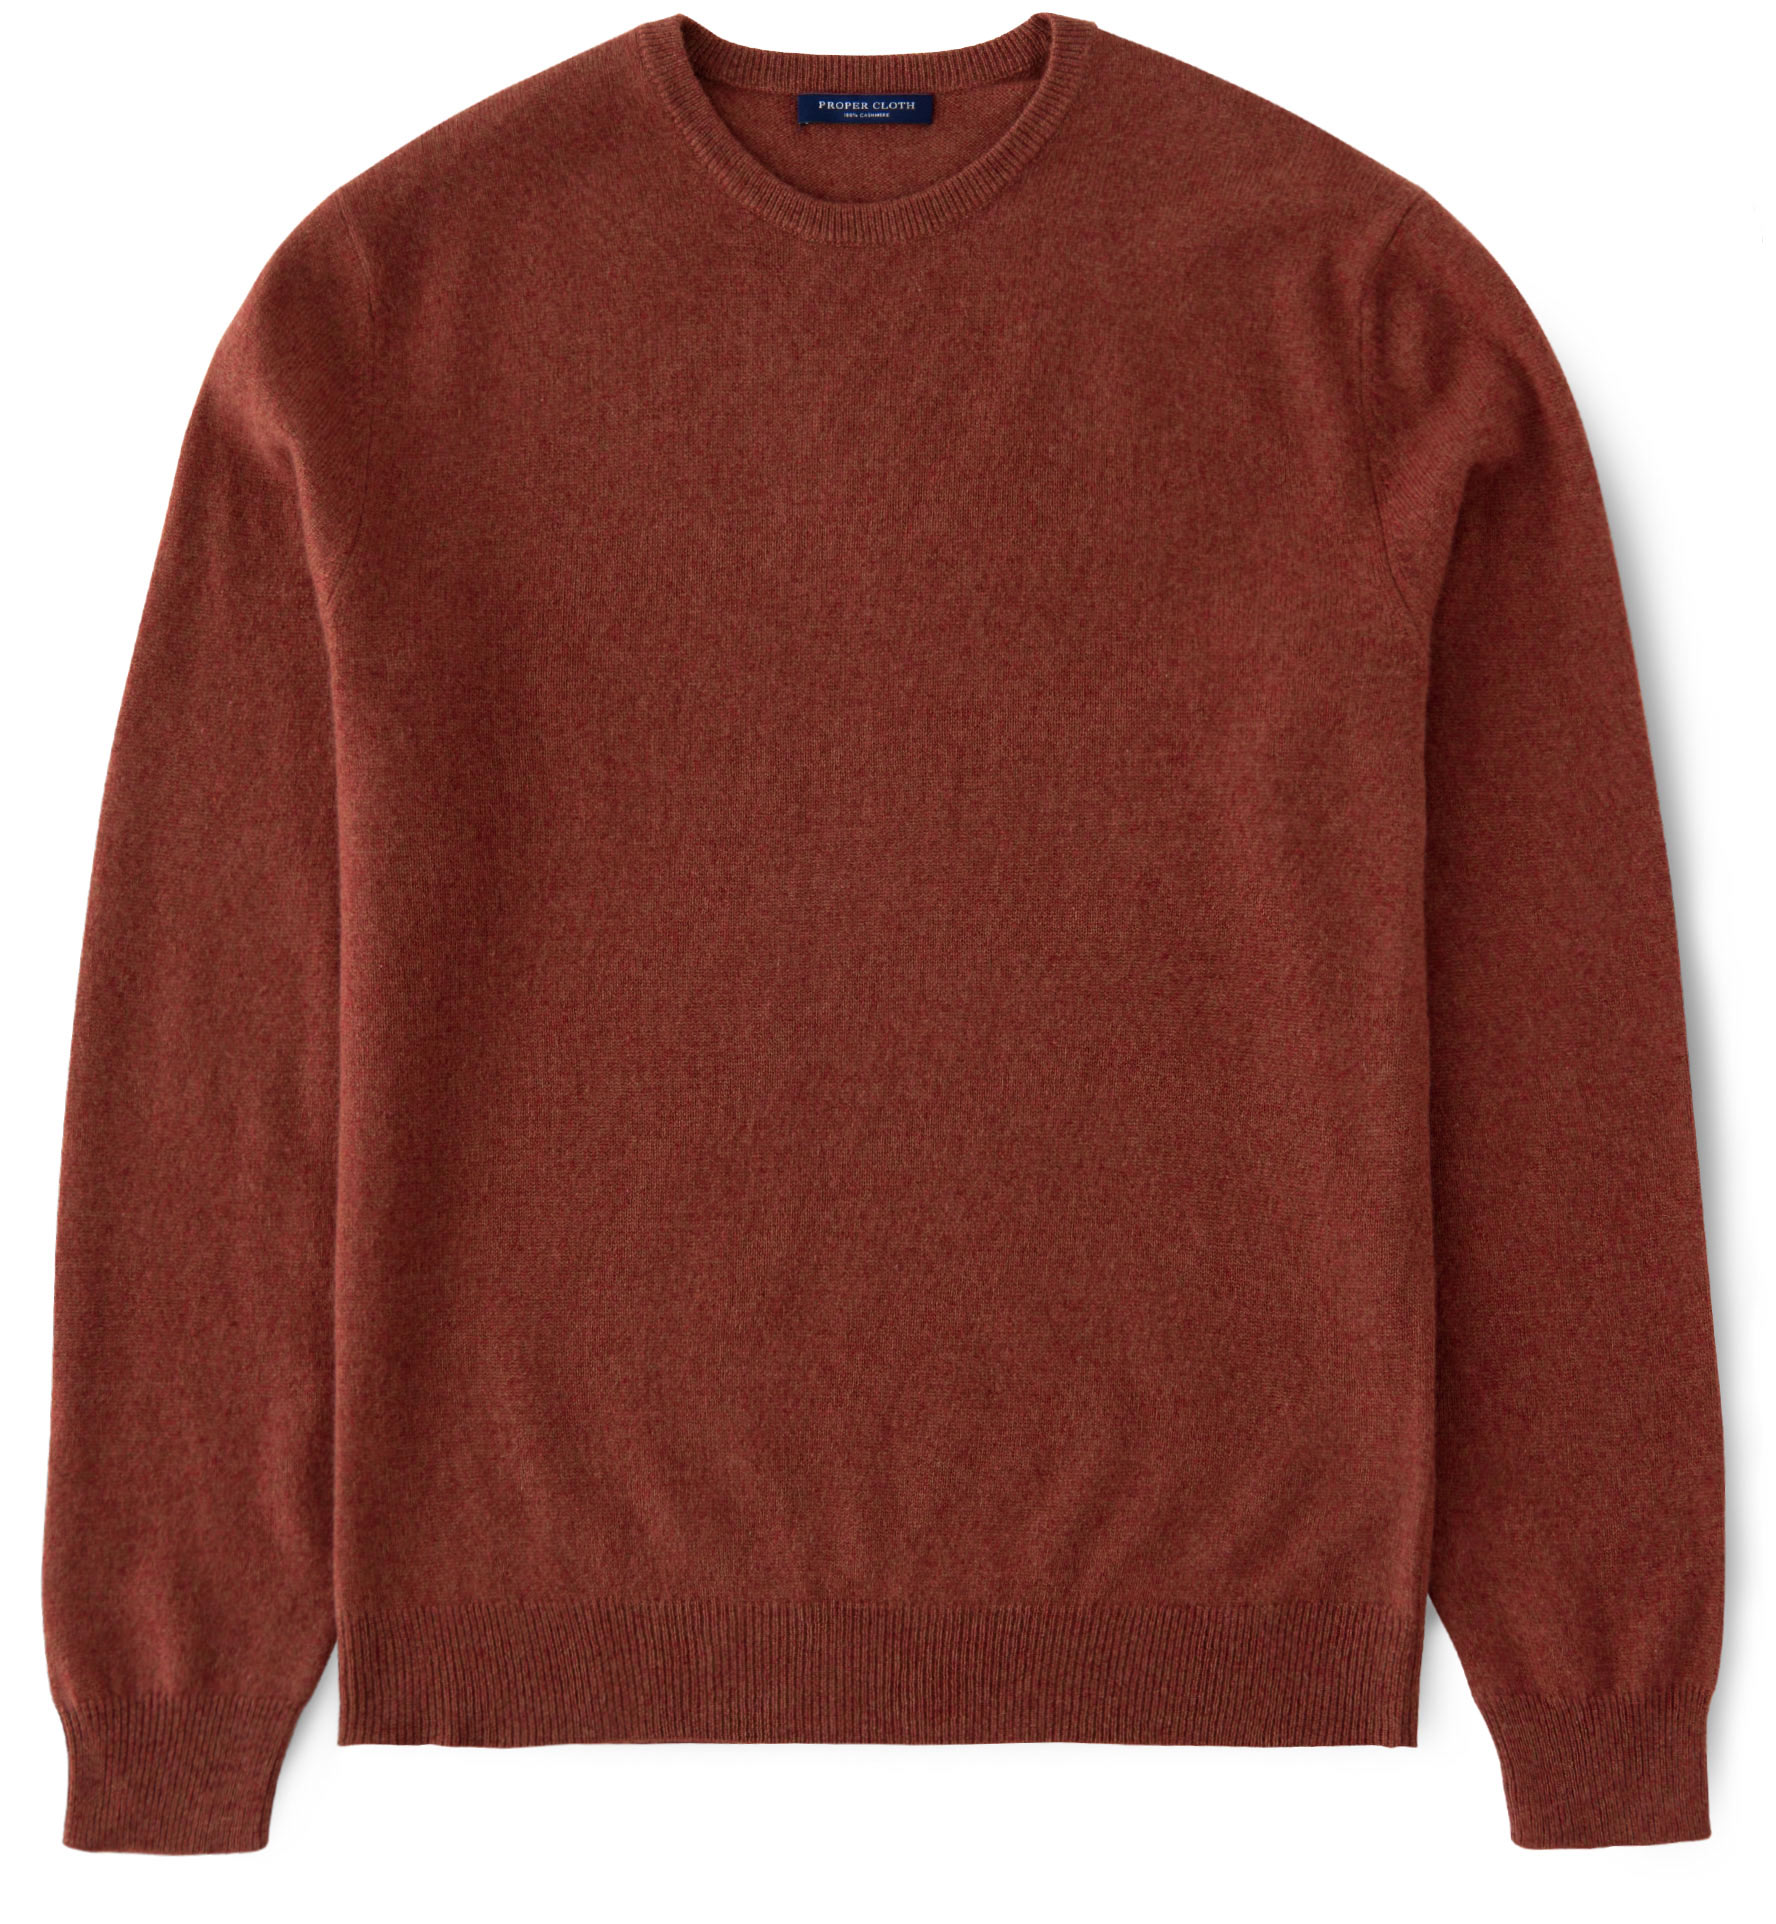 Crewneck Cashemere Sweater in 9 Colors